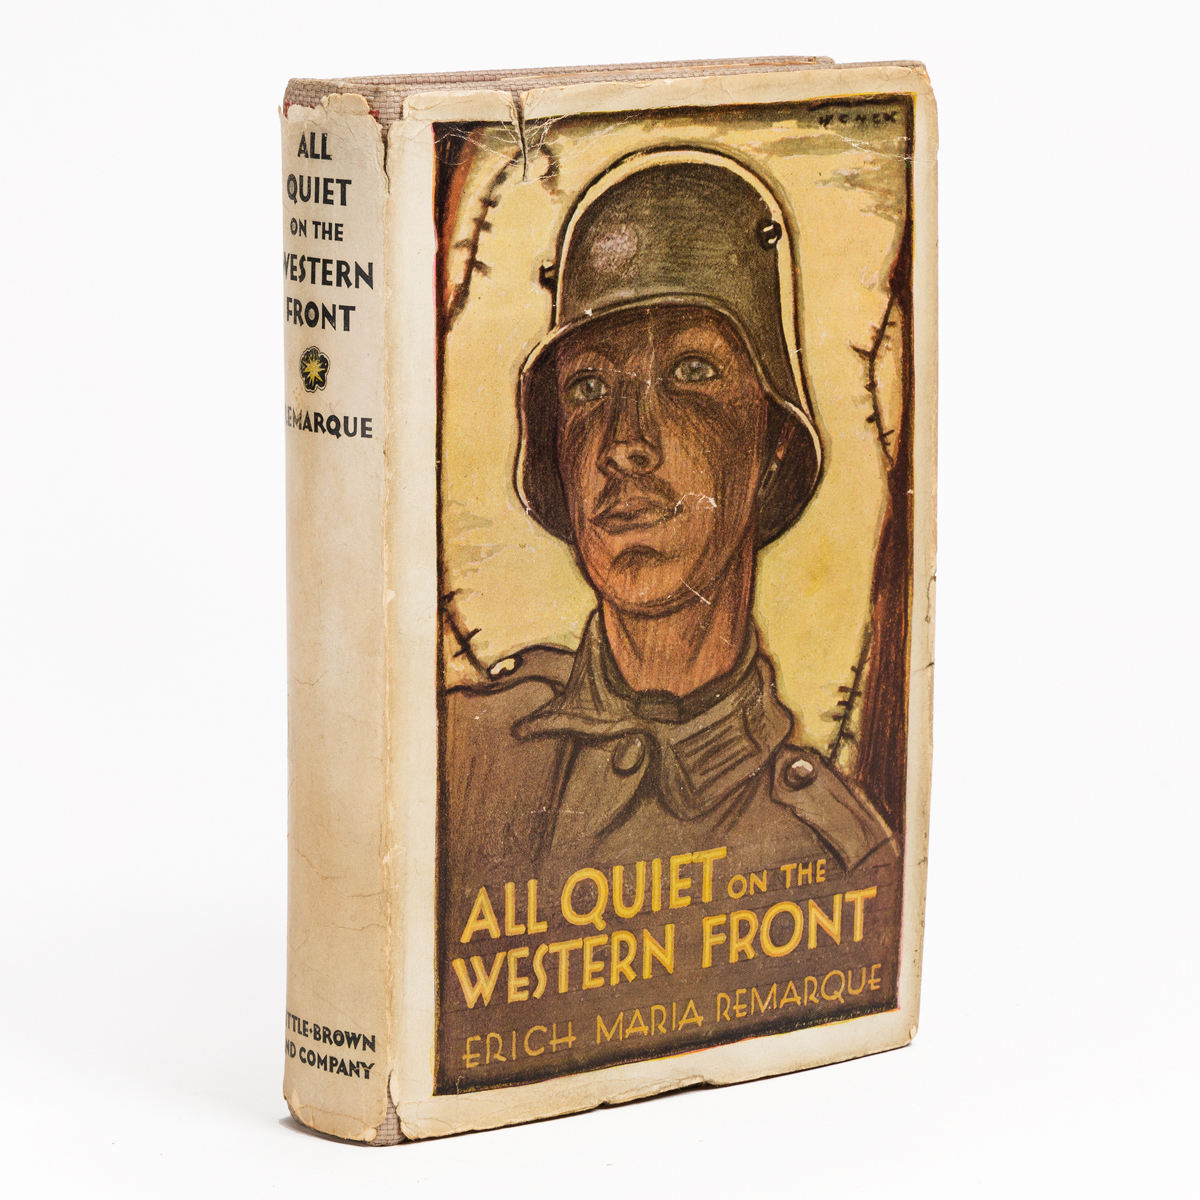 REMARQUE, ERICH MARIA. All Quiet on the Western Front.